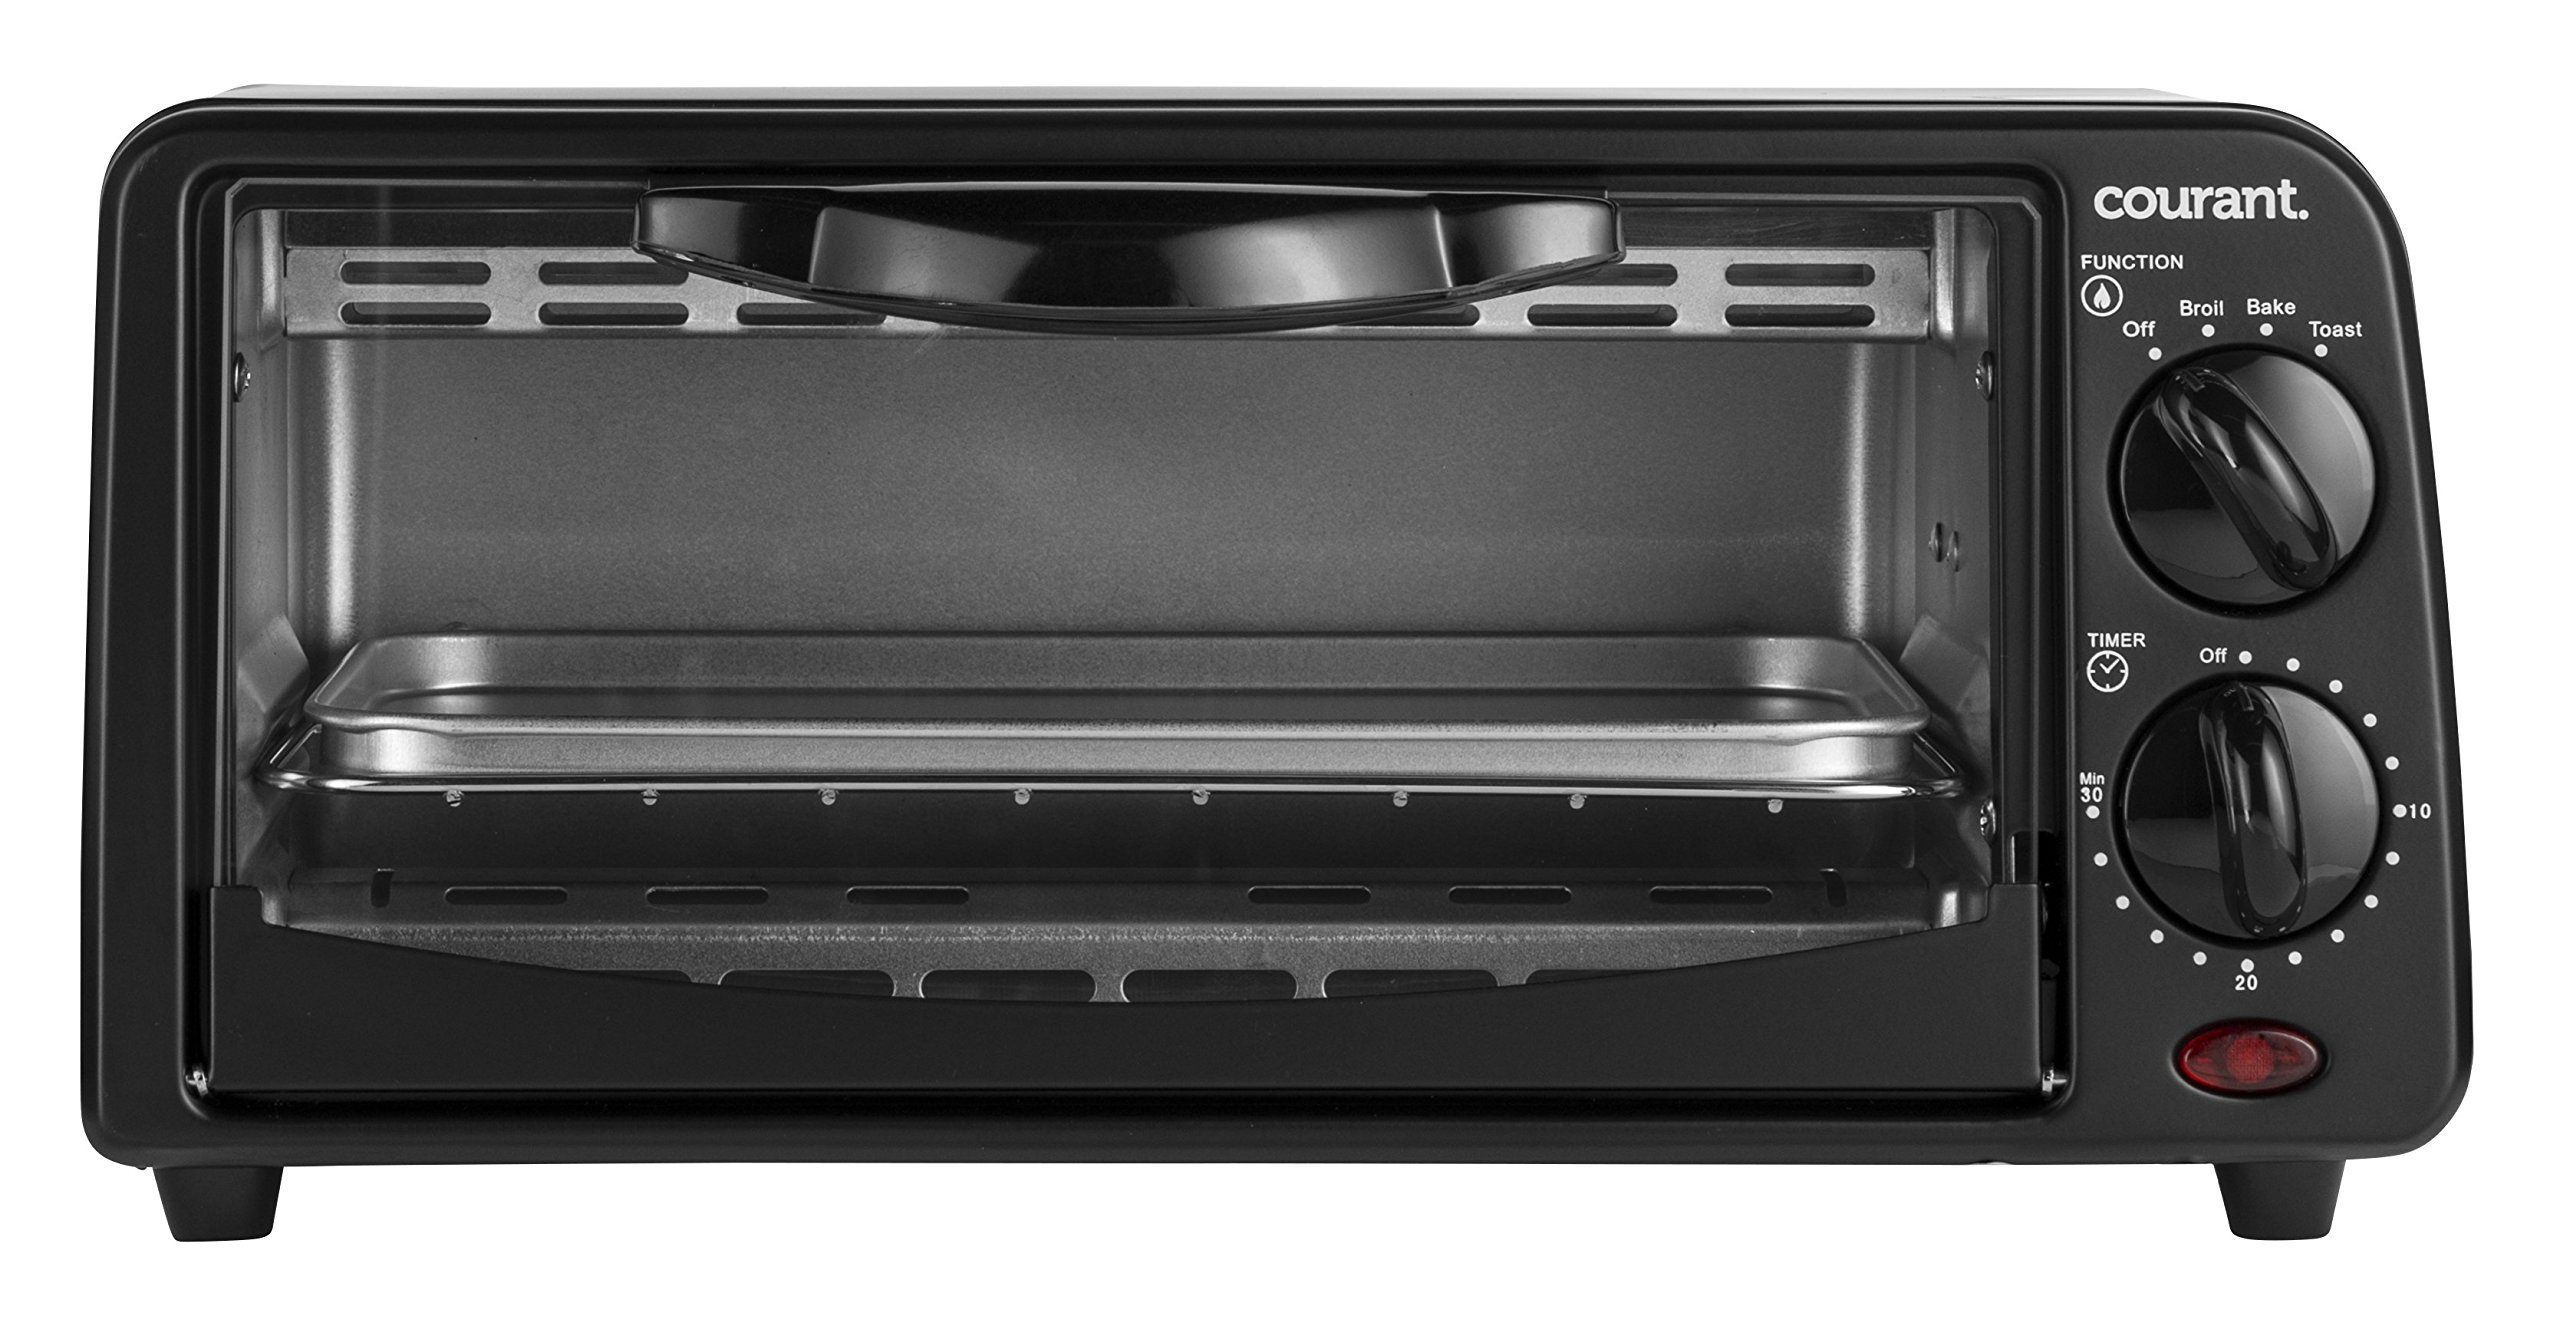 Courant TO-621K 2 Slice Compact Toaster Oven with Bake Tray and Toast Rack, Black by Courant